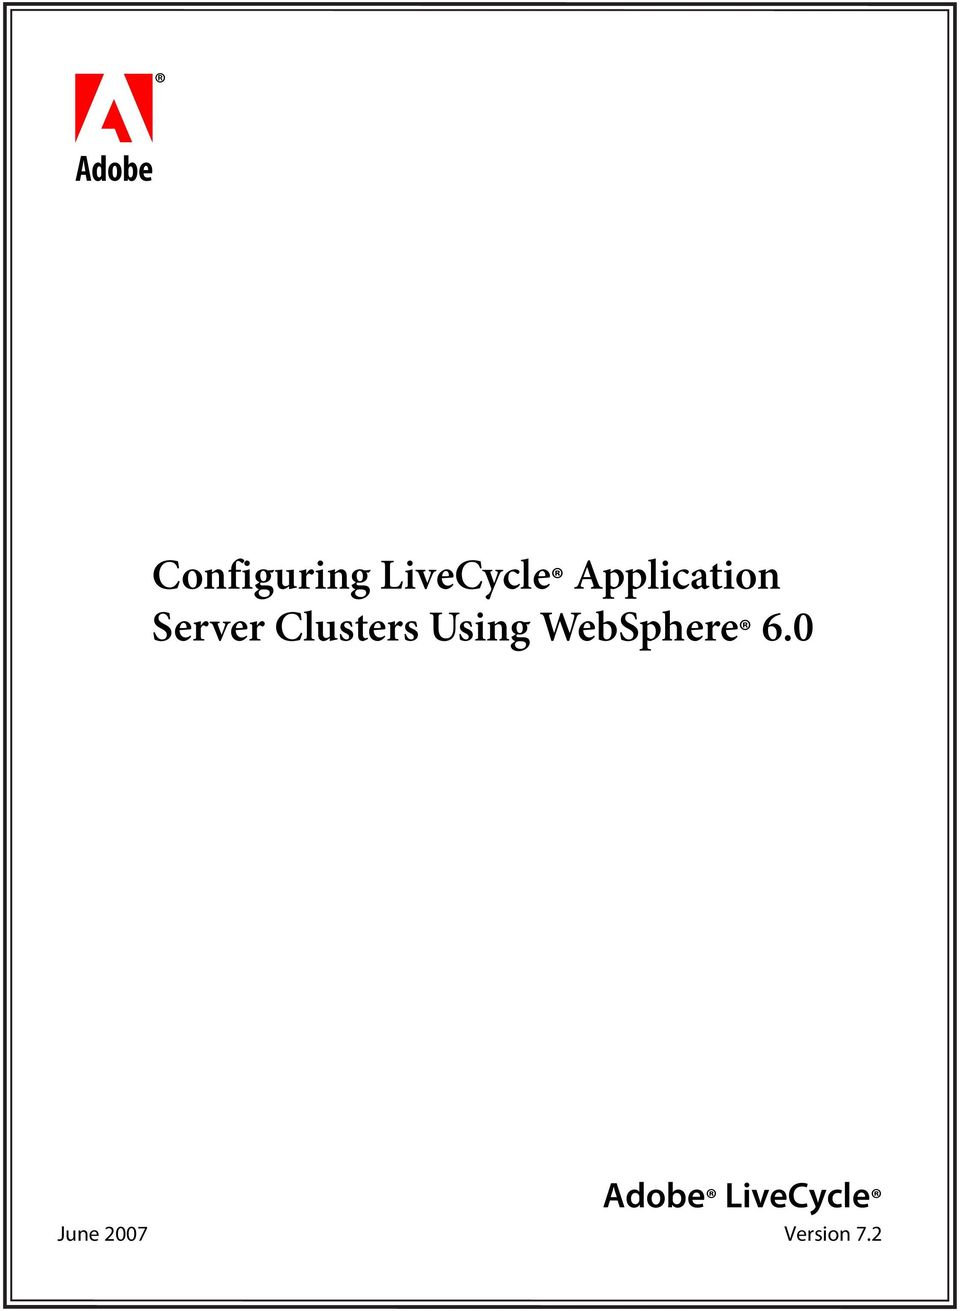 Using WebSphere 6.